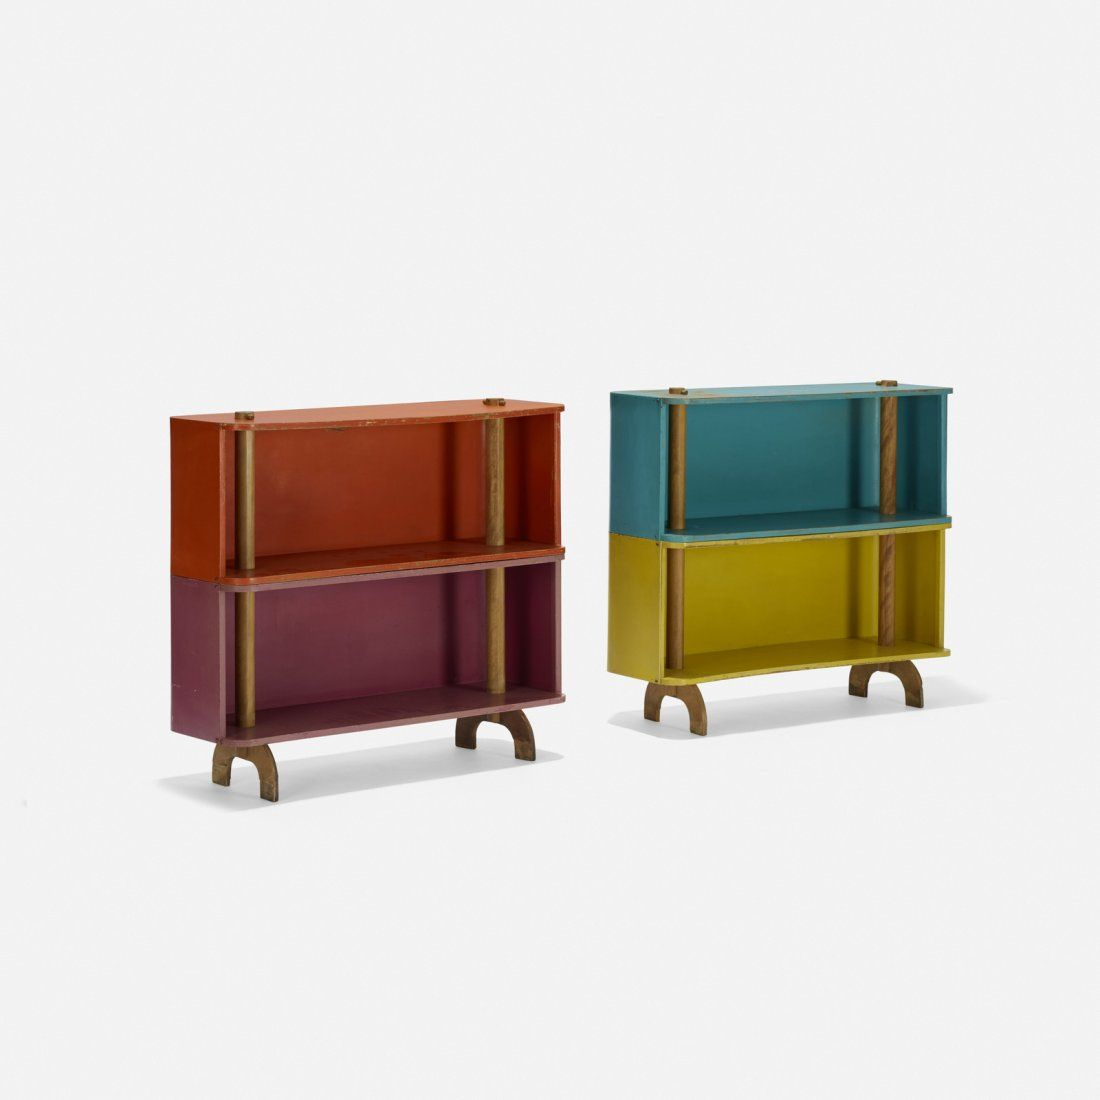 Henry Glass, Swingline bookcases, pair